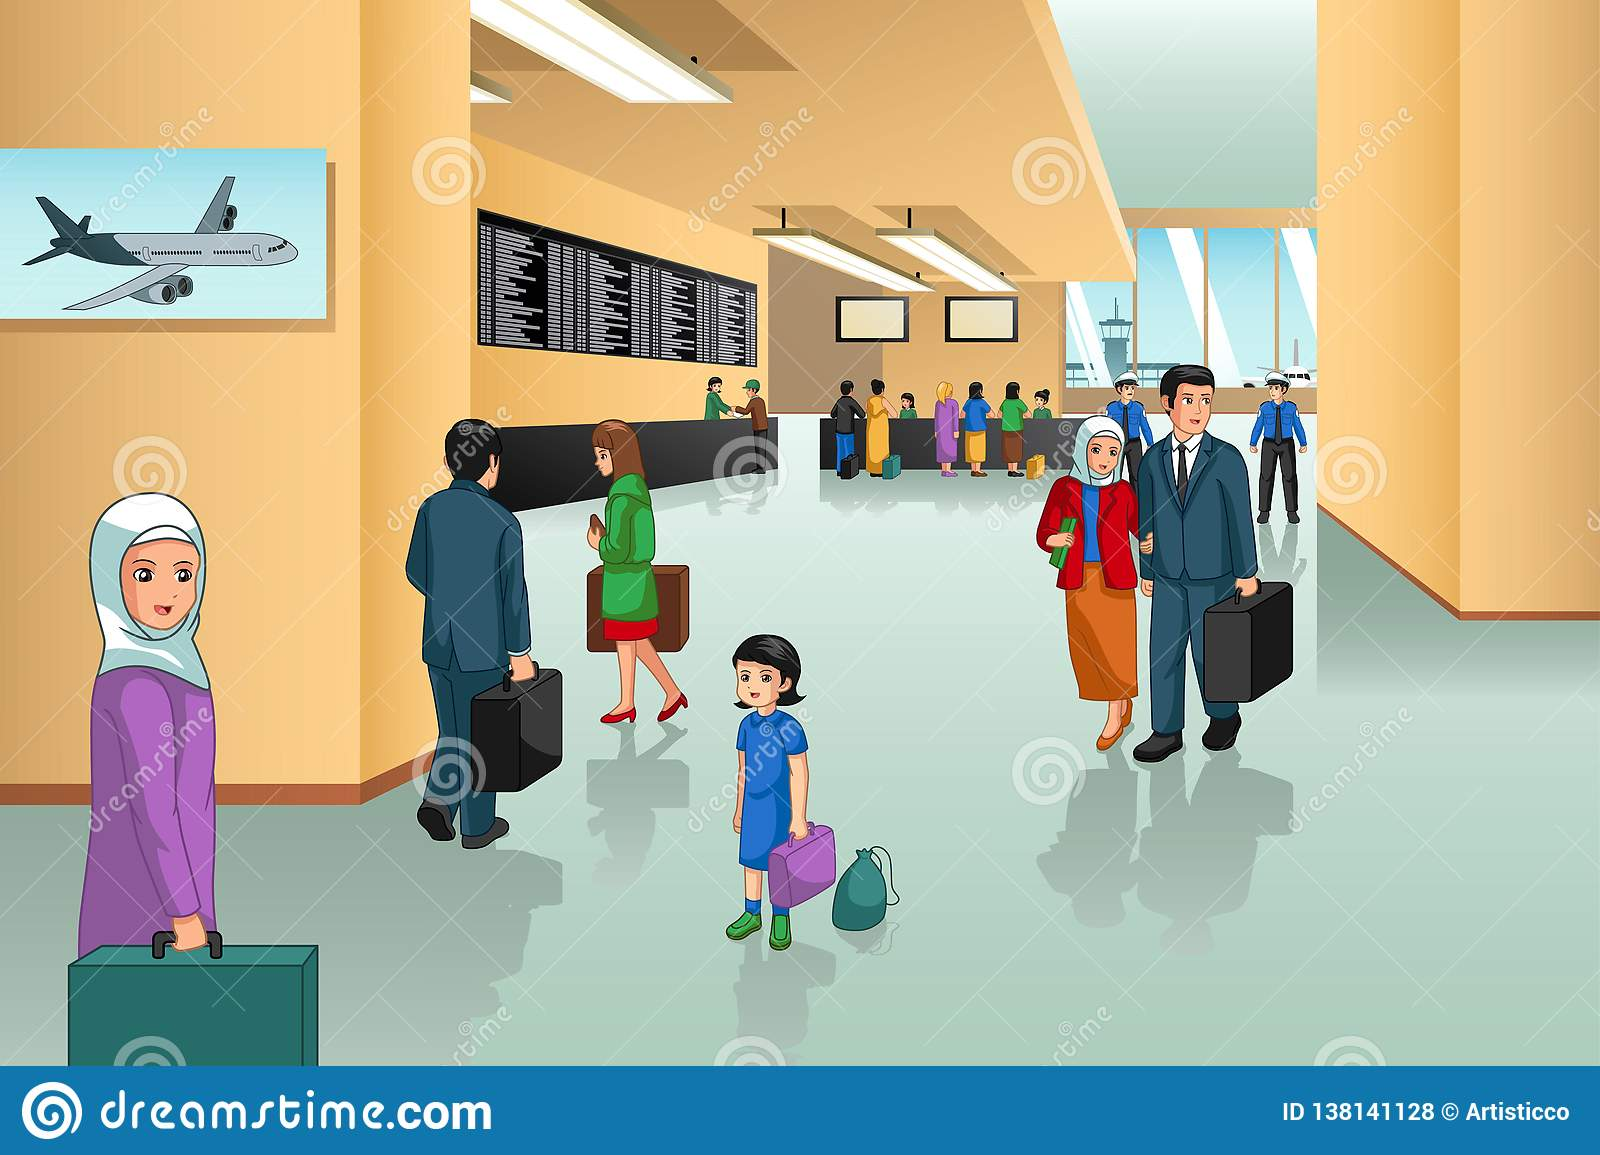 Inside Airport Scene Illustration Stock Vector.